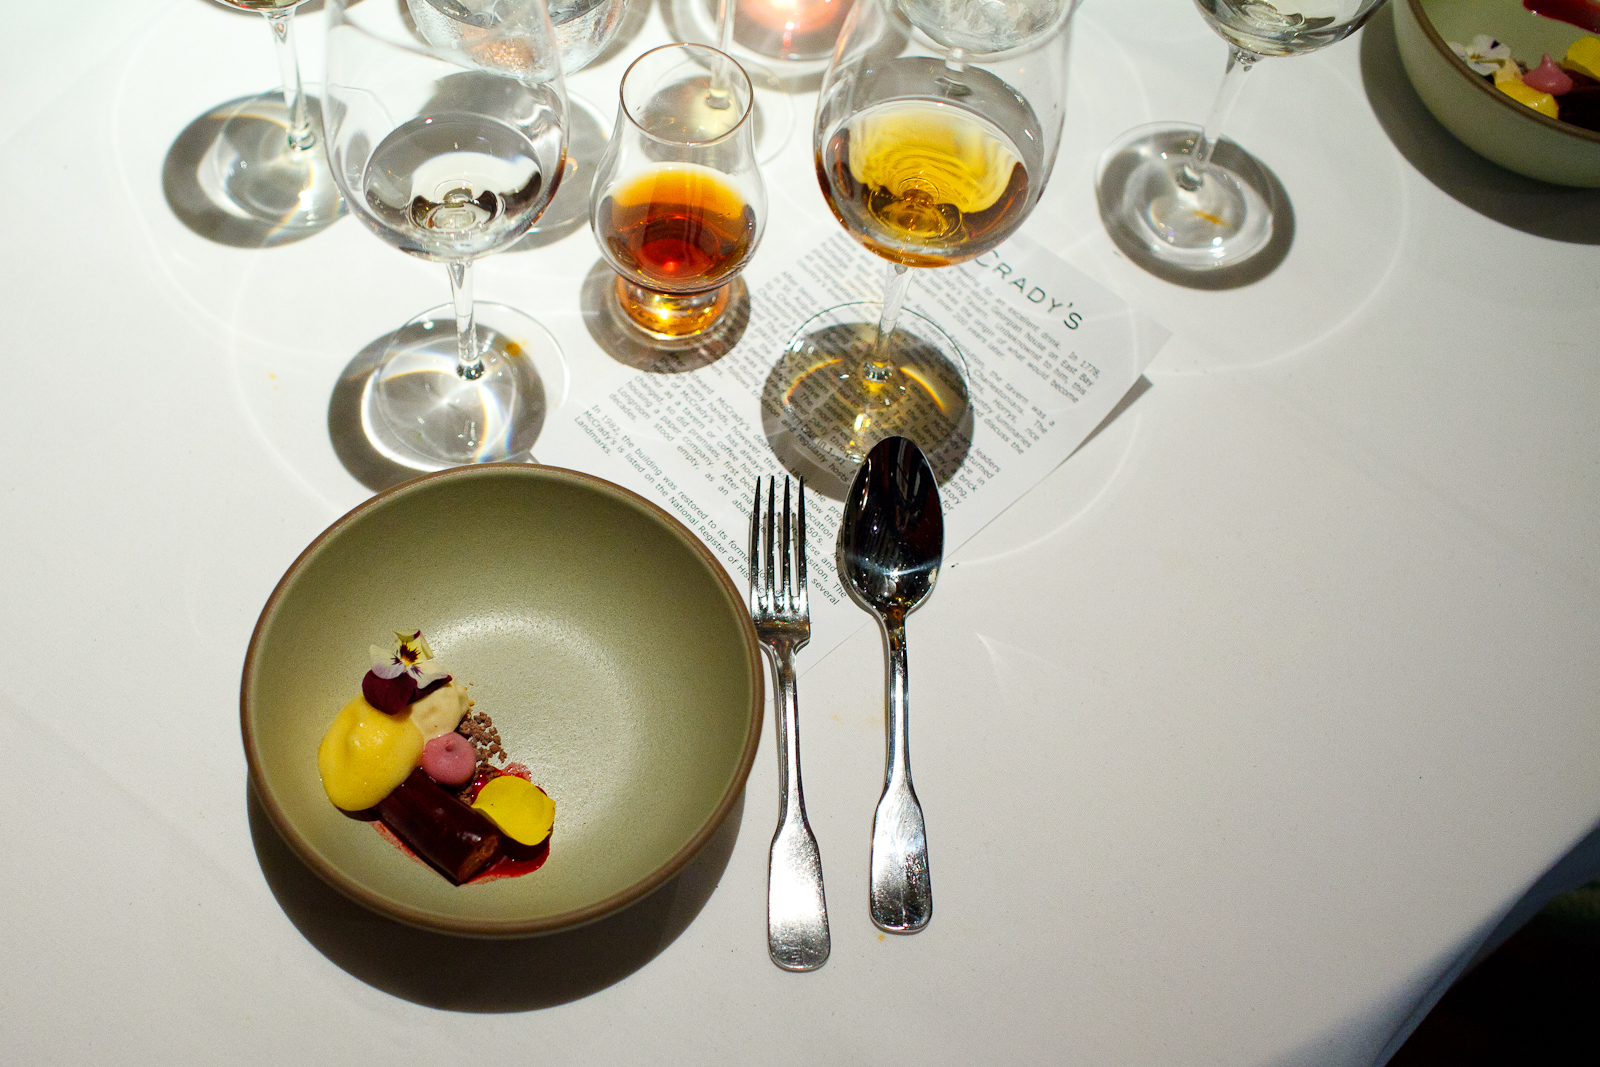 11th Course: Beet gelée with passion fruit and hazelnut